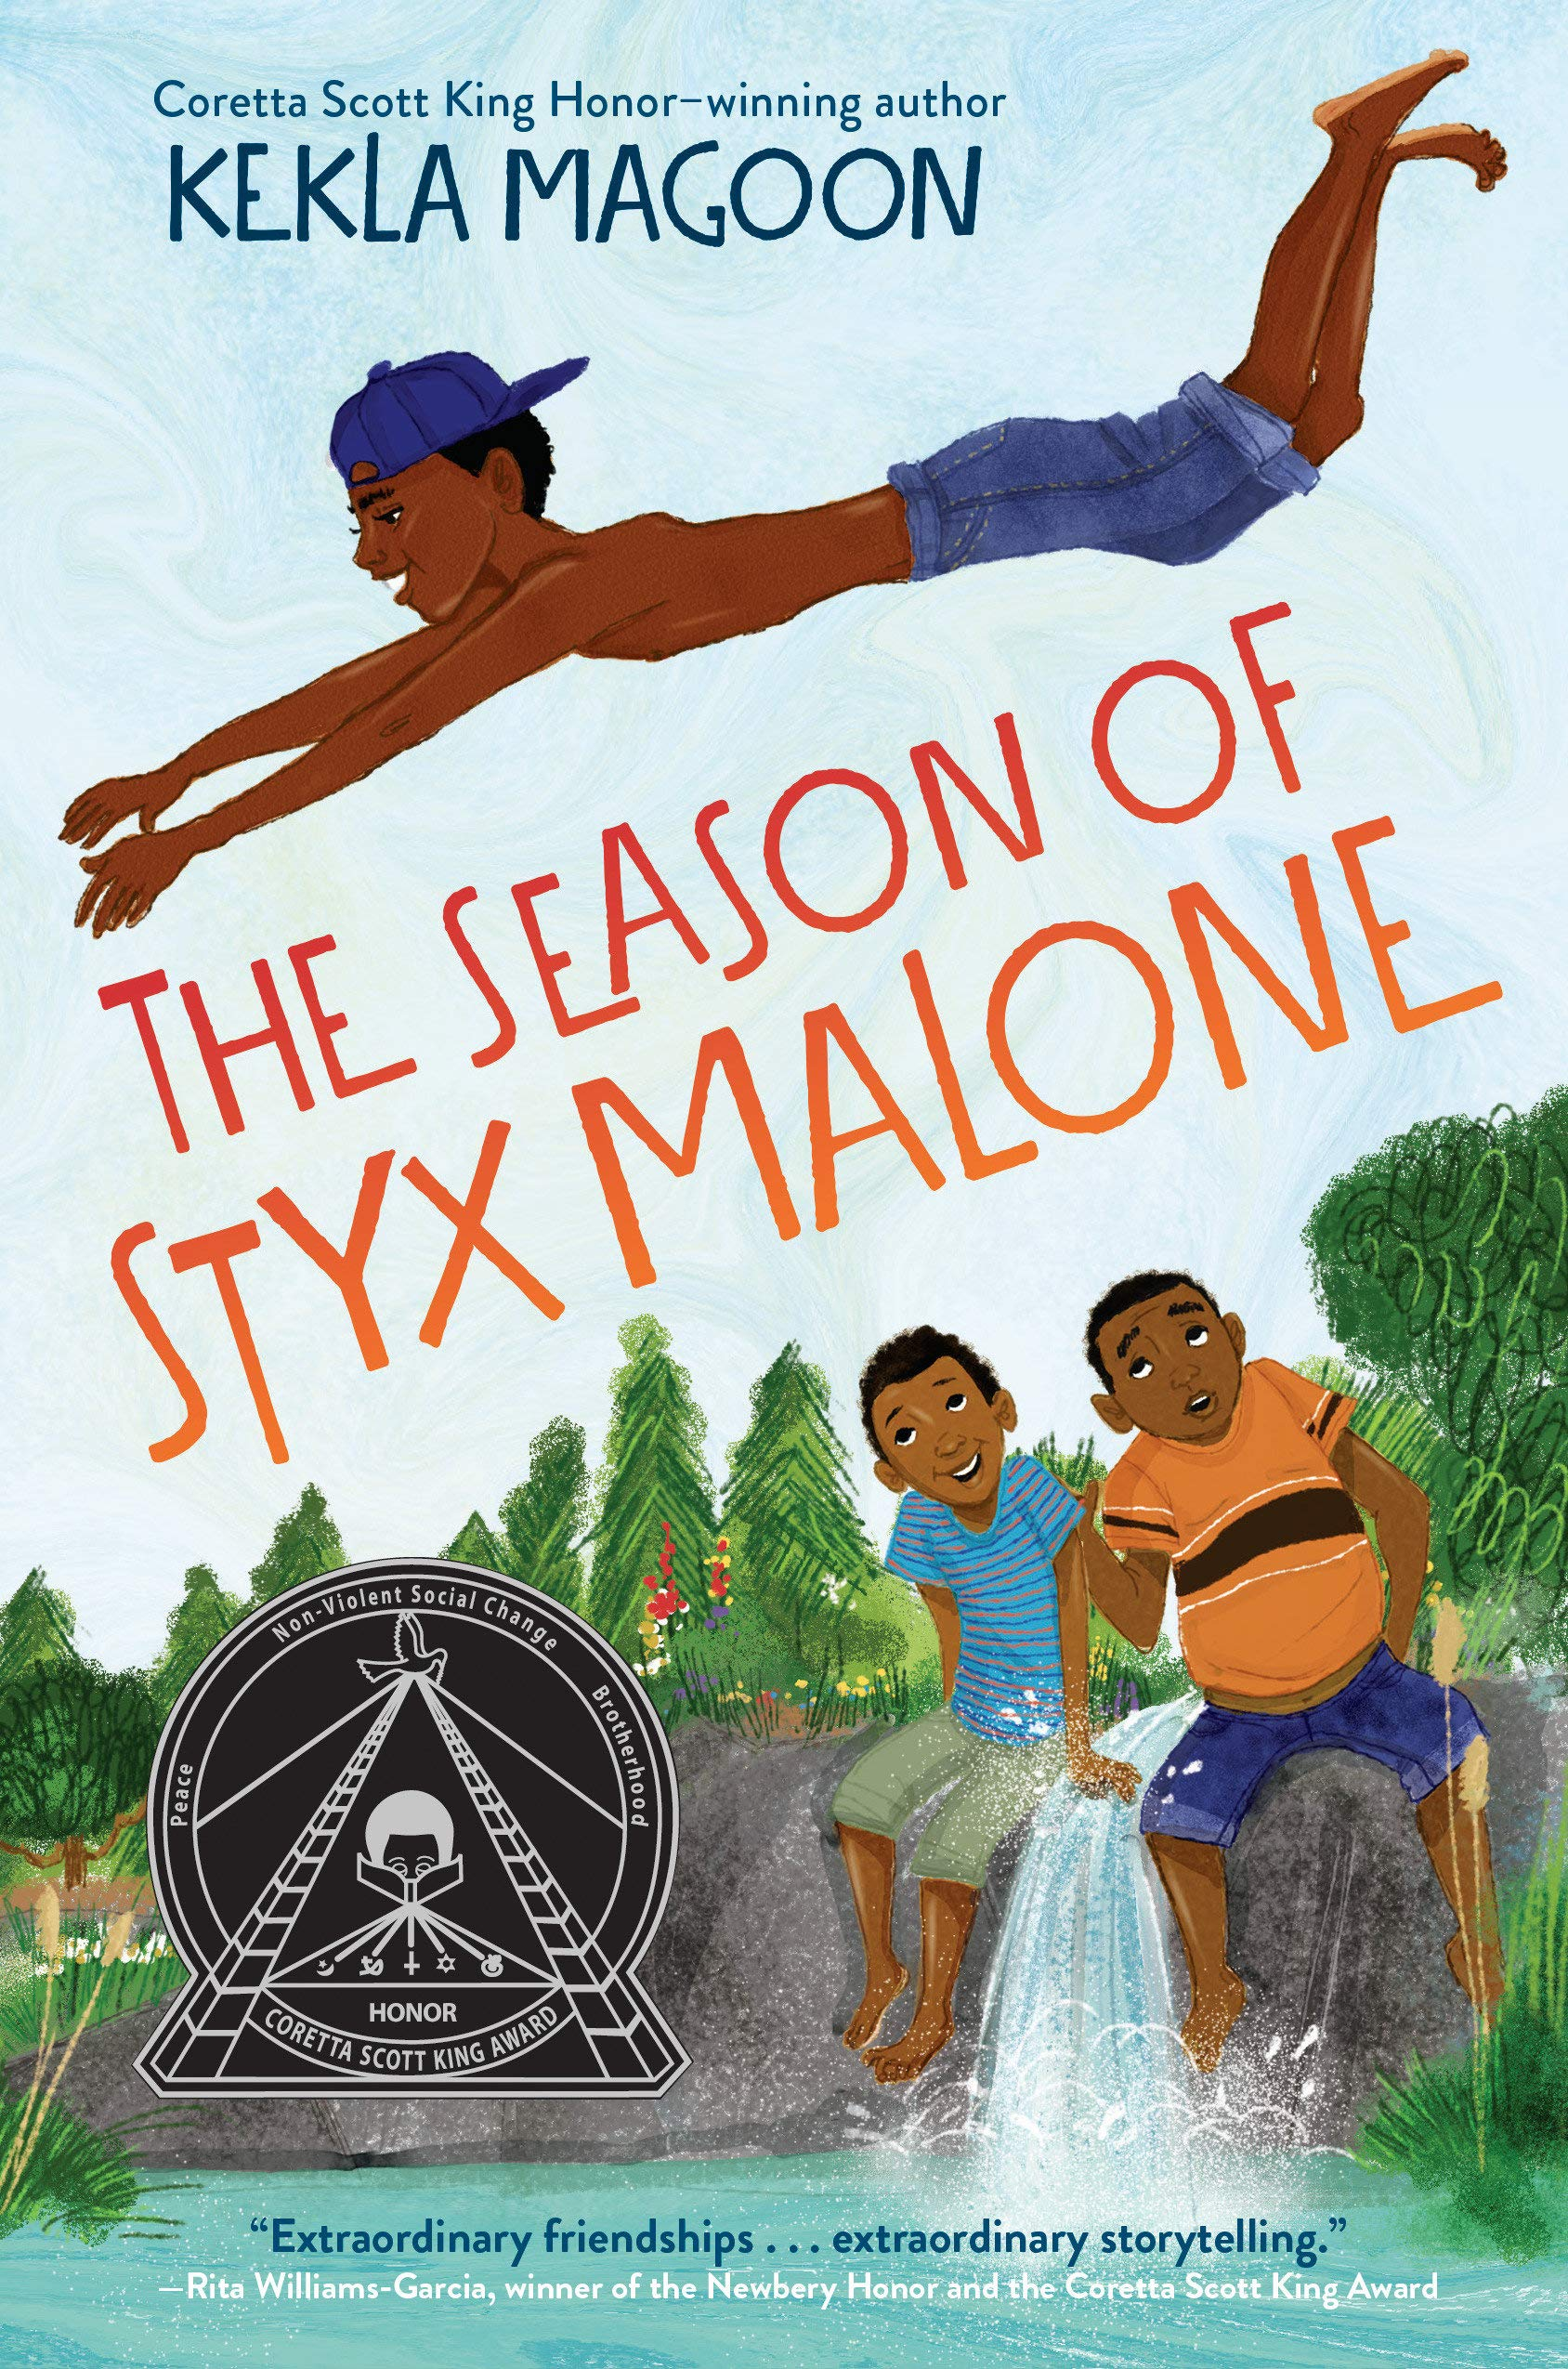 The Season of Styx Malone: Magoon, Kekla: 9781524715960: Amazon.com: Books